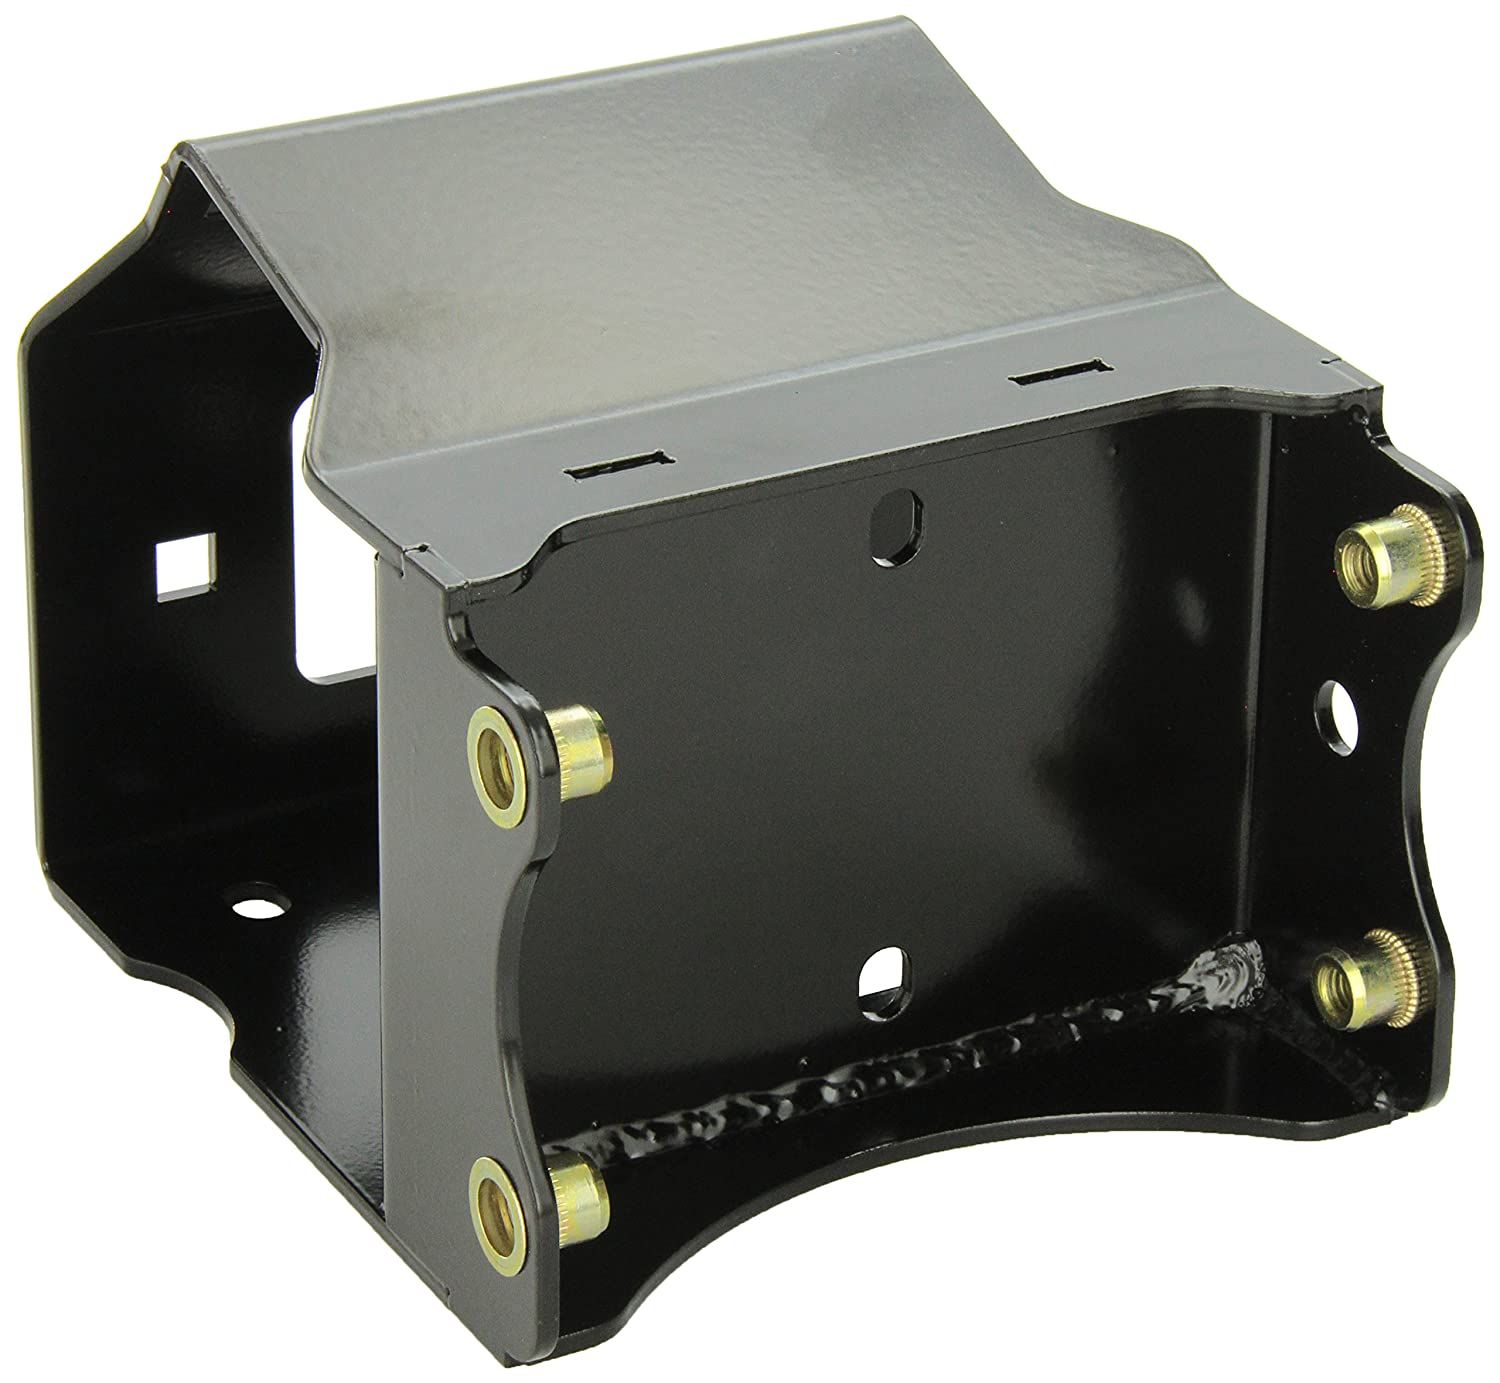 Kfi Products 100740 Winch Mount For Polaris Sportsman Xp Wiring Diagram In Addition As Well 570 Automotive